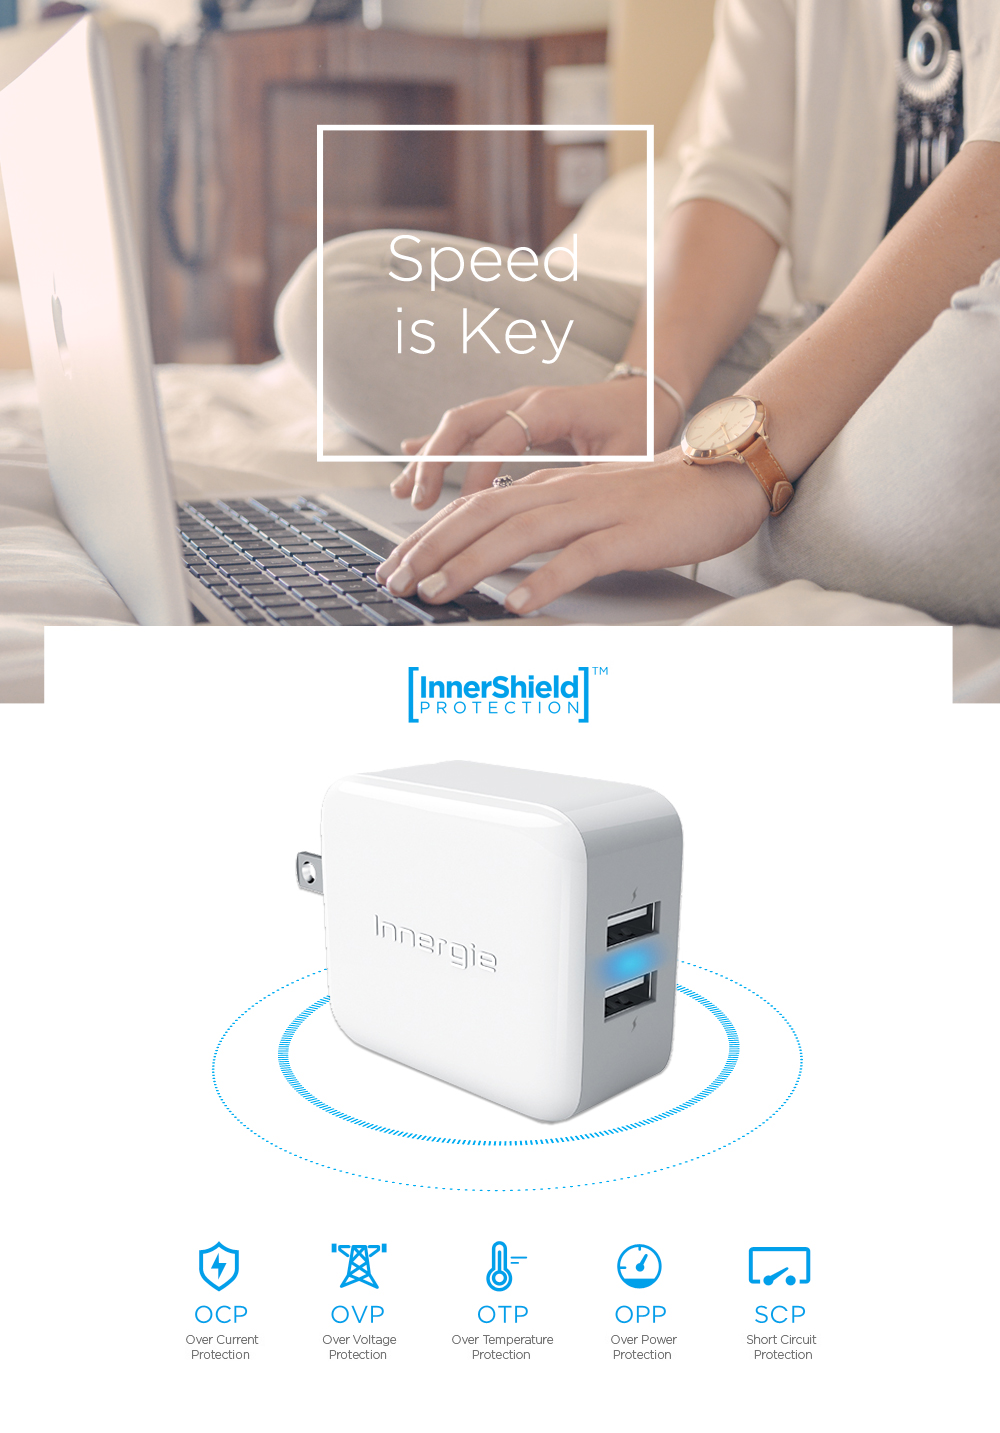 InnerShield™ Power Protection